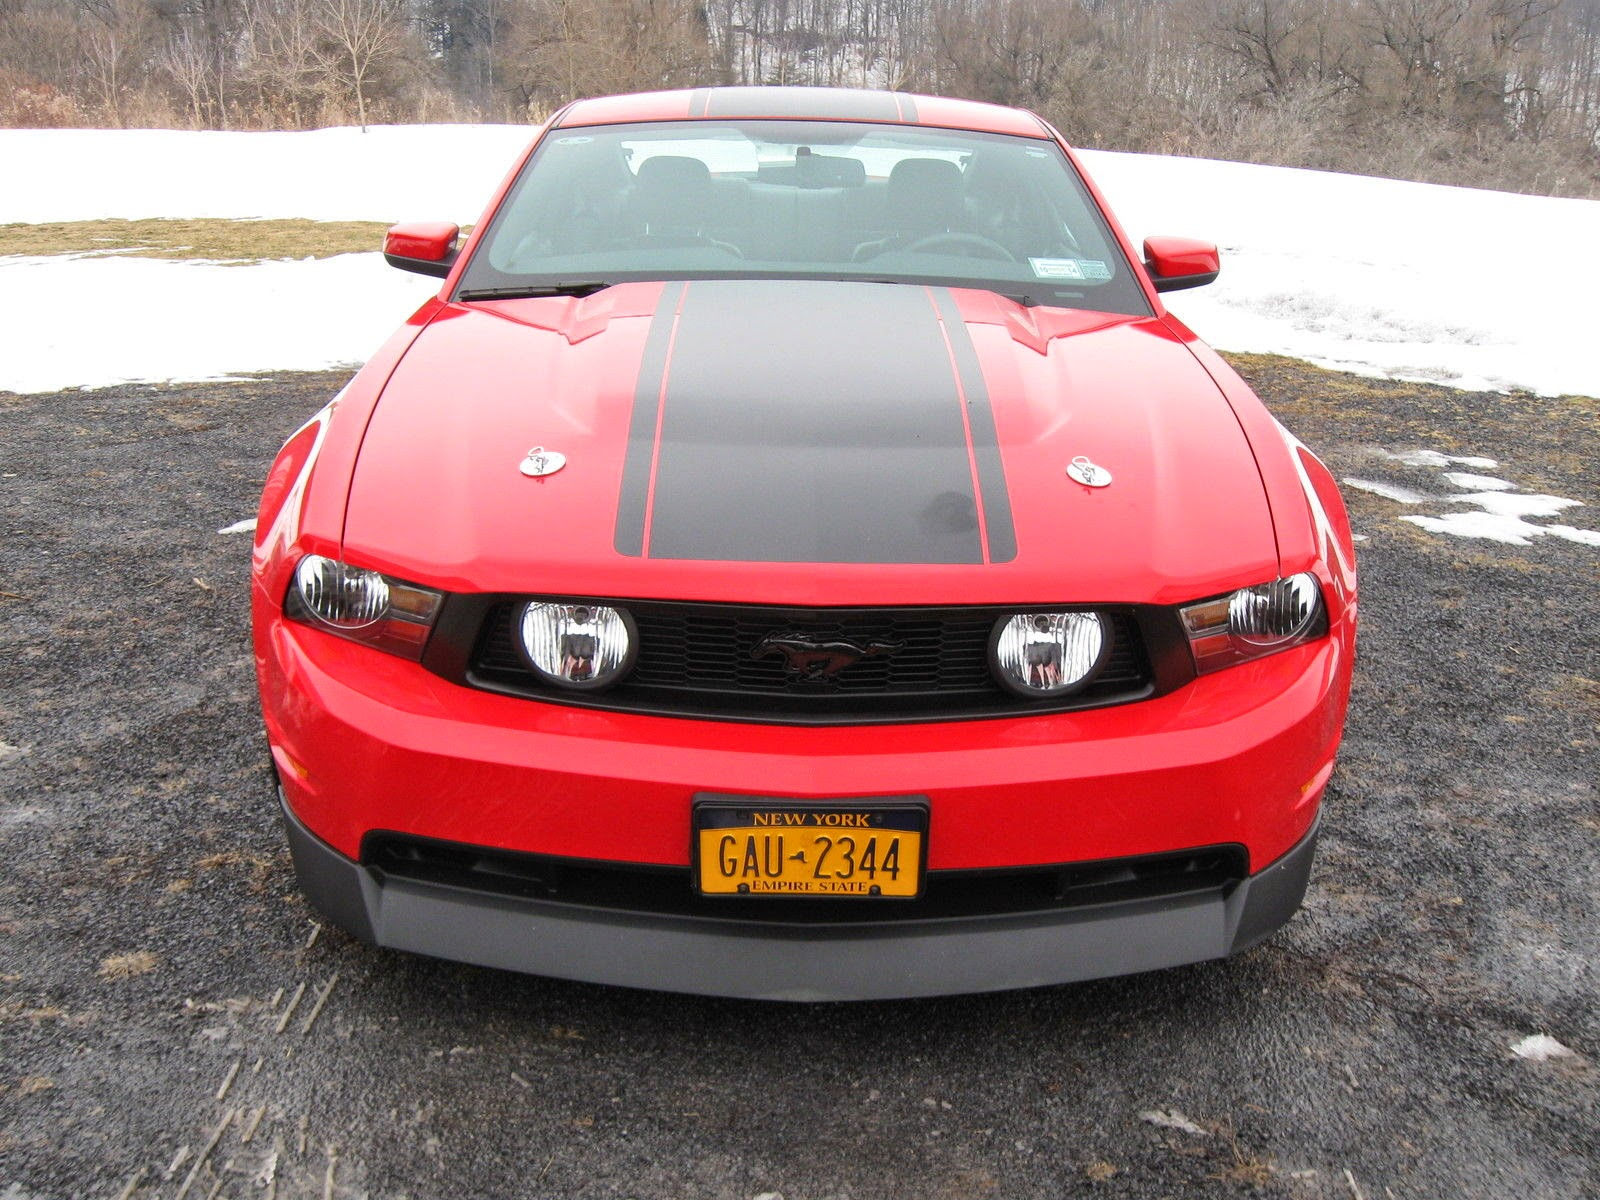 2010 ford mustang gt premium for sale american muscle cars